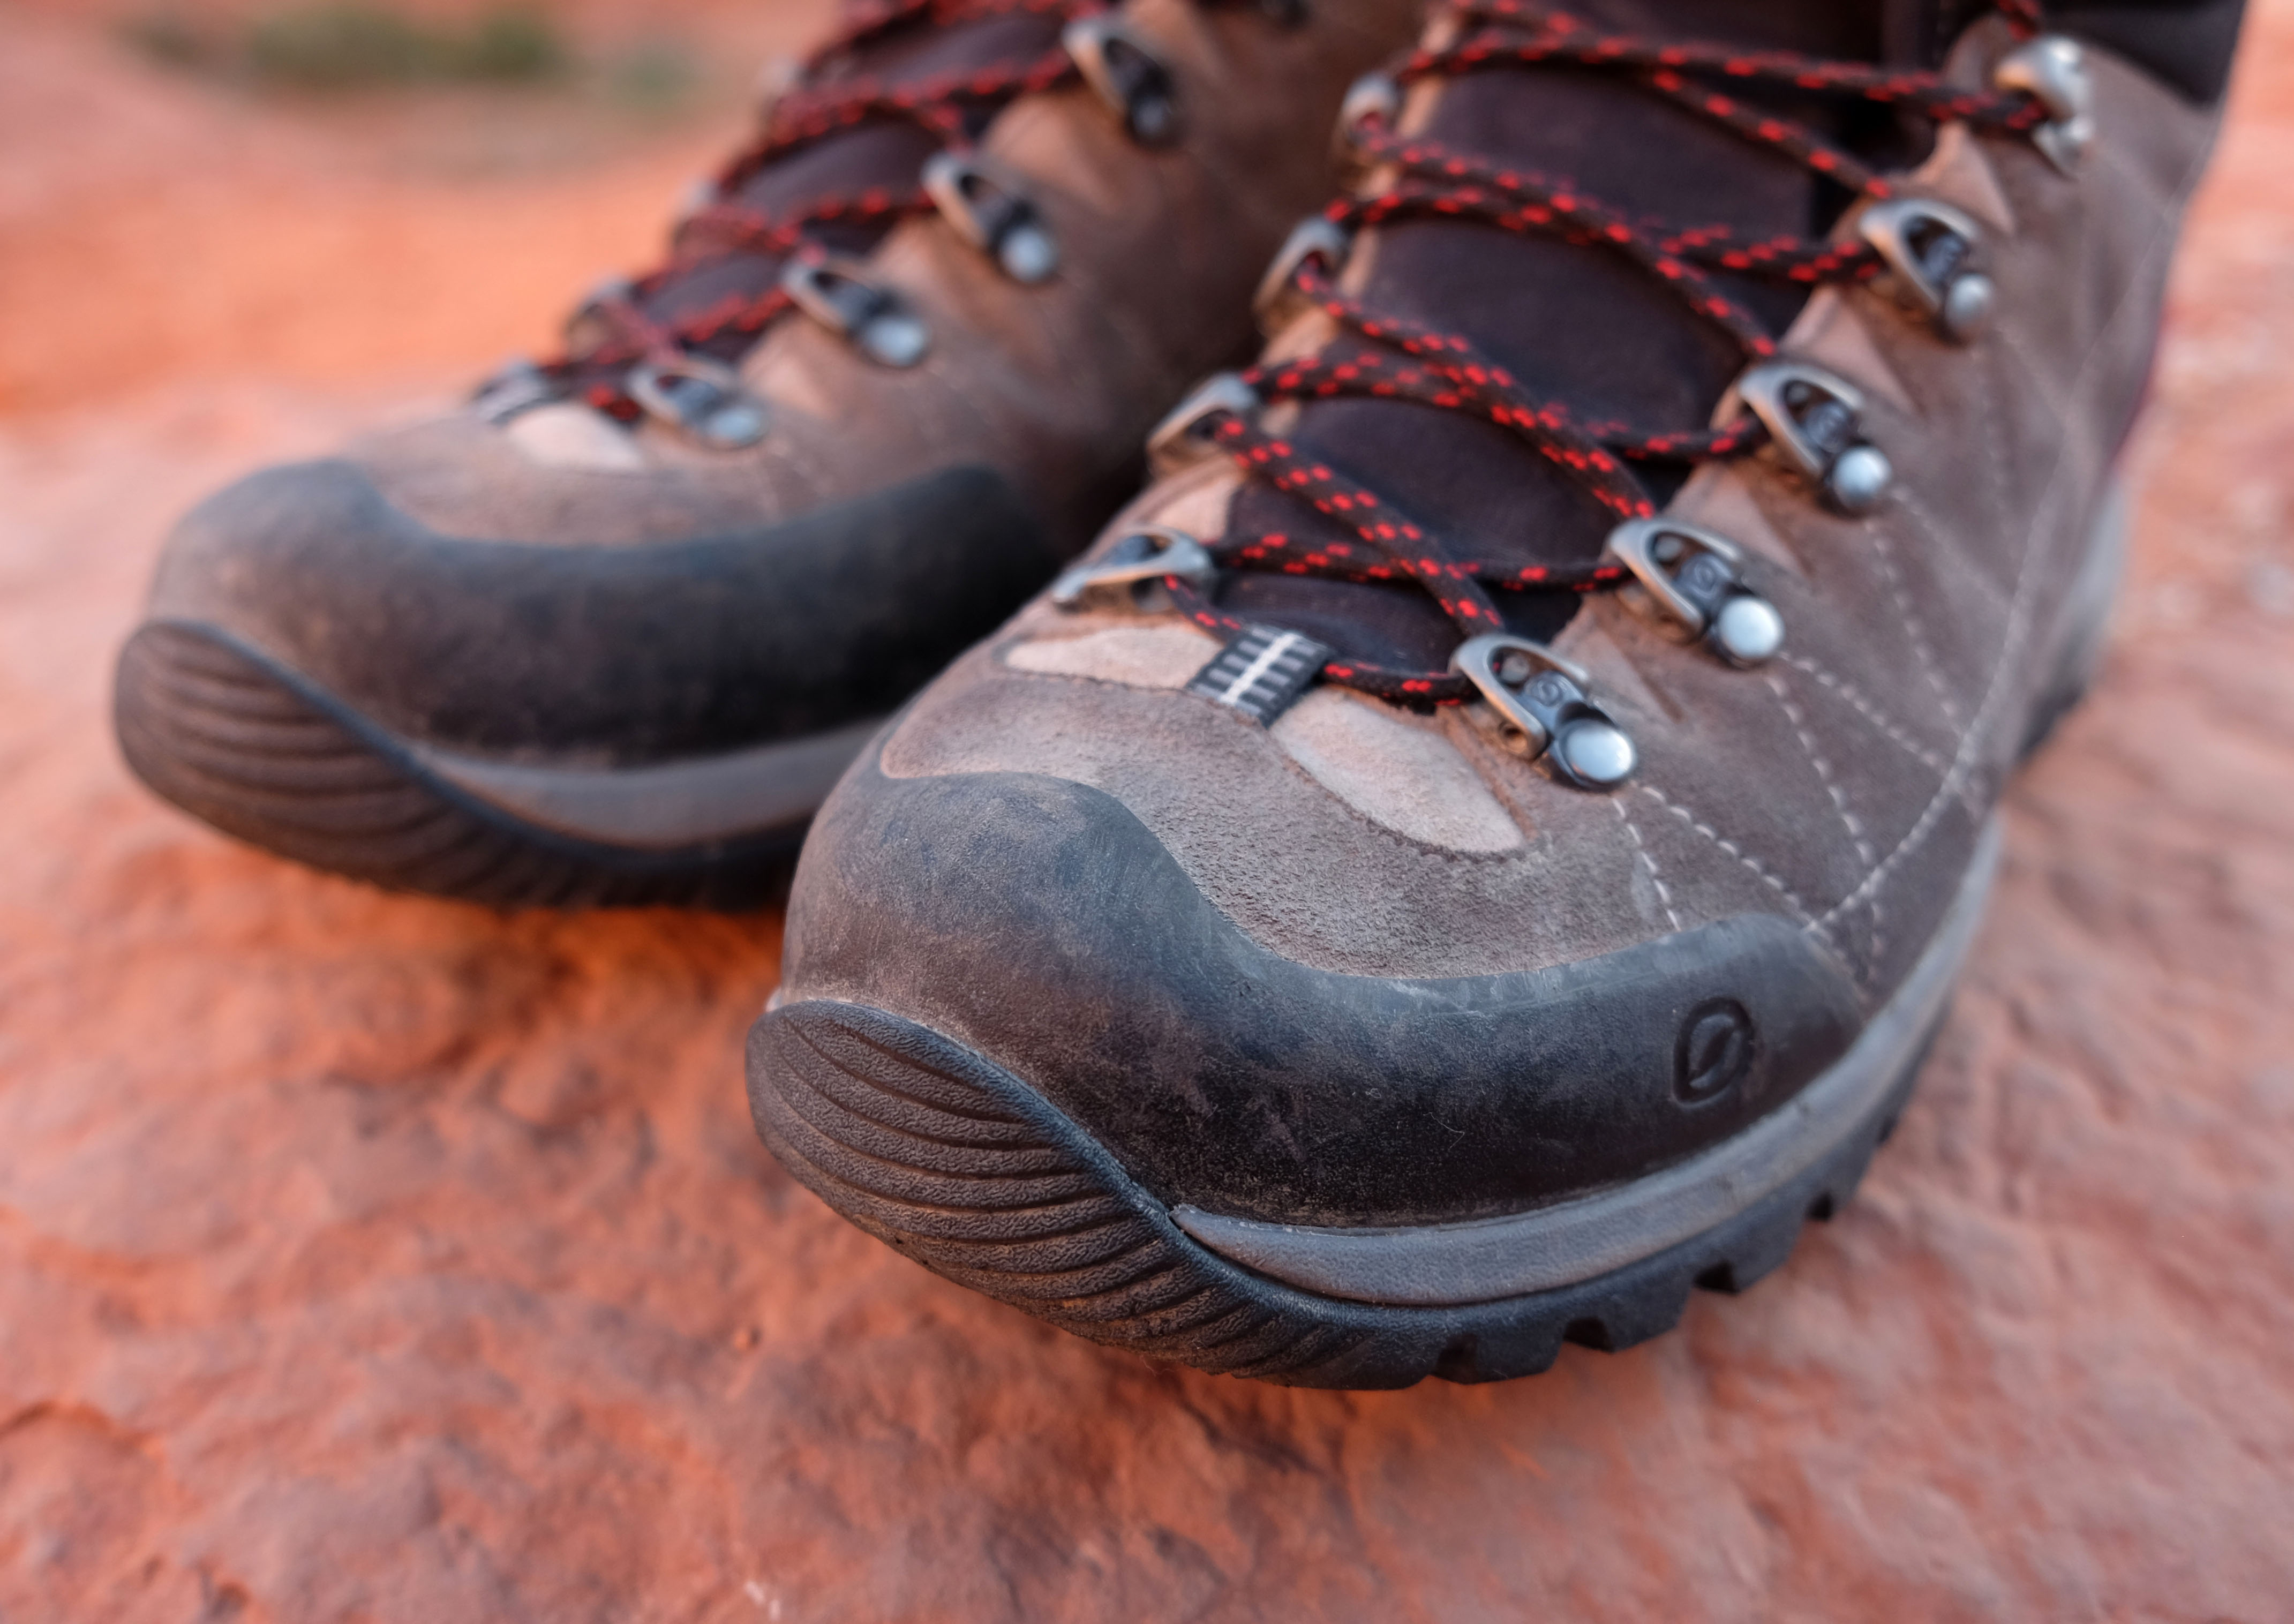 Scarpa R-Evolution GTX Hiking Boots front